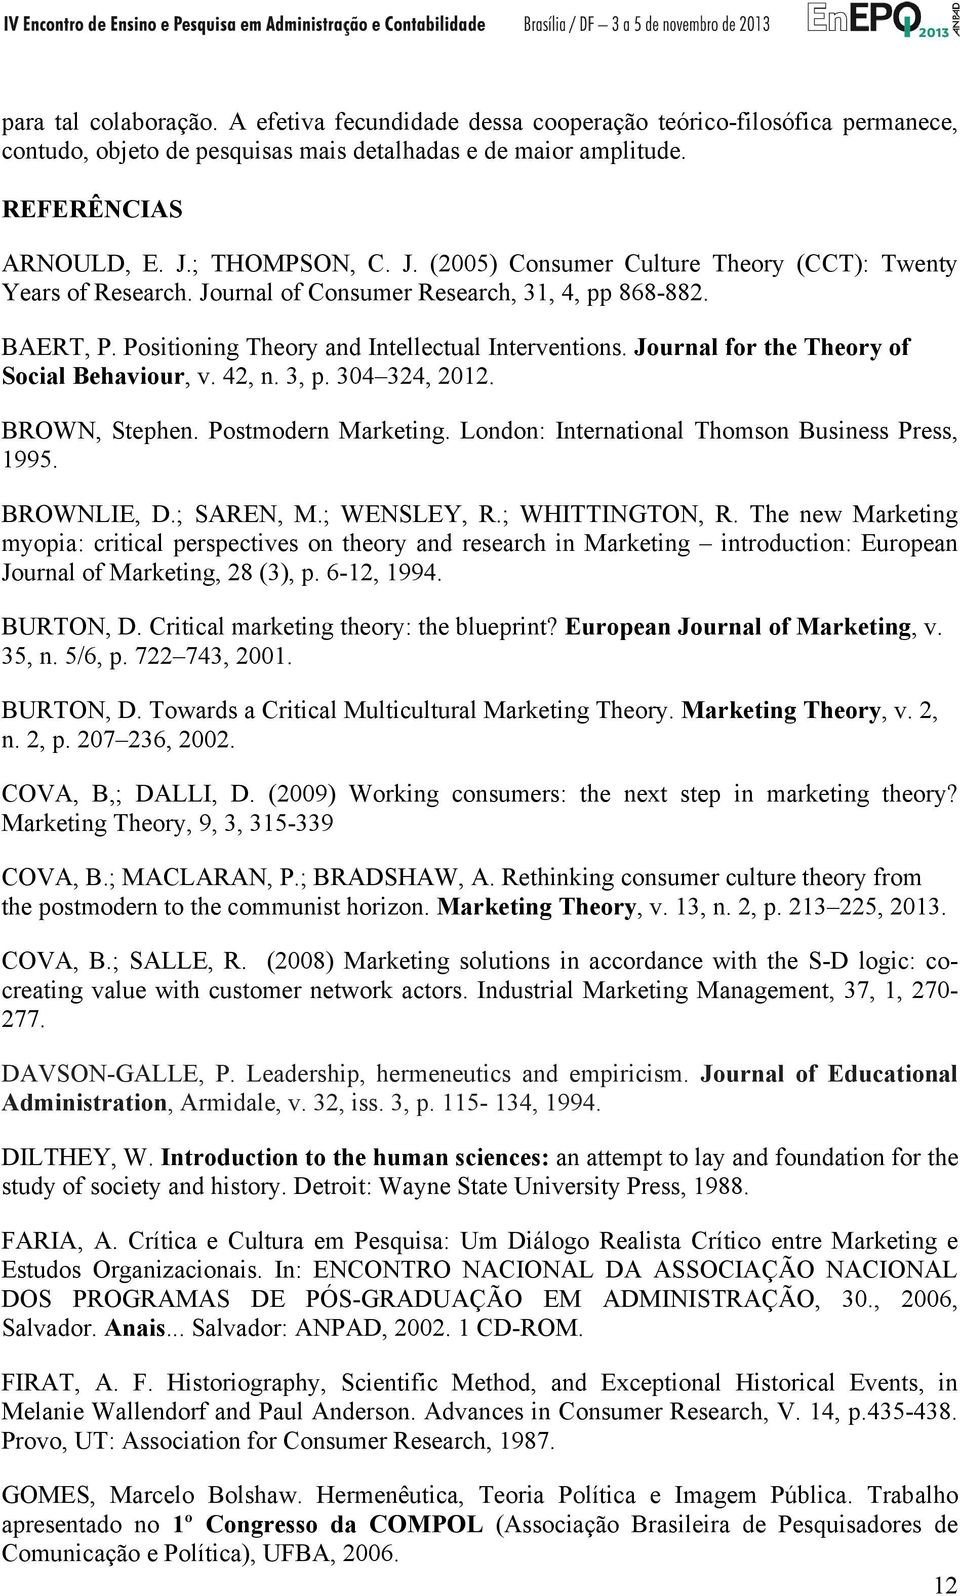 Journal for the Theory of Social Behaviour, v. 42, n. 3, p. 304 324, 2012. BROWN, Stephen. Postmodern Marketing. London: International Thomson Business Press, 1995. BROWNLIE, D.; SAREN, M.